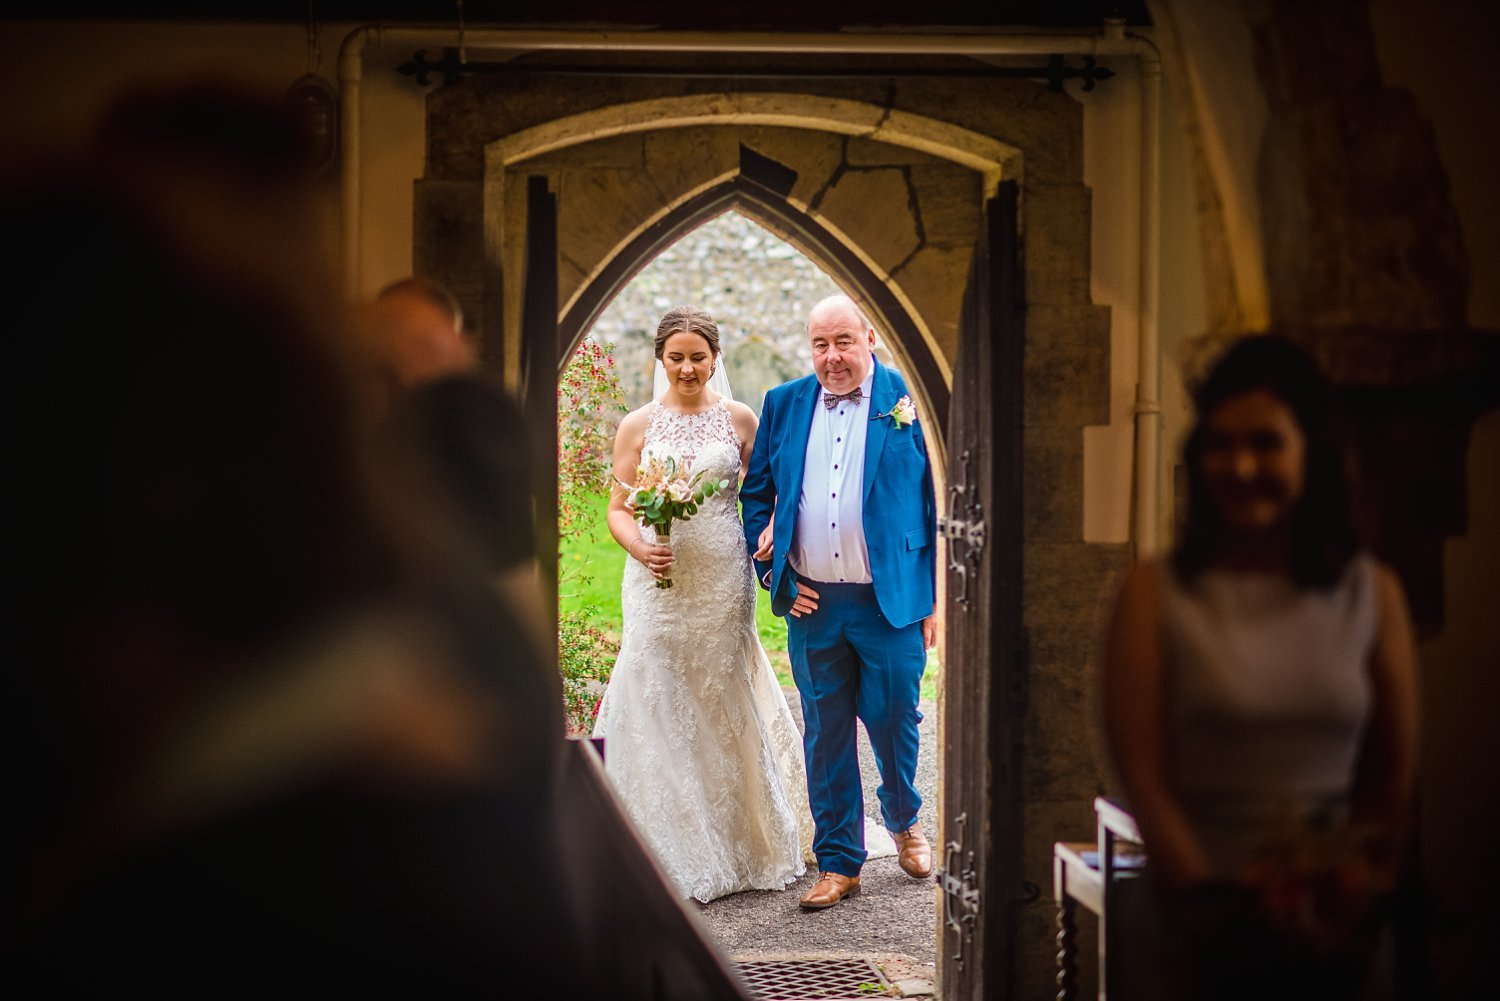 Duncton Mill Fishery Wedding - bride and her dad are entering the church